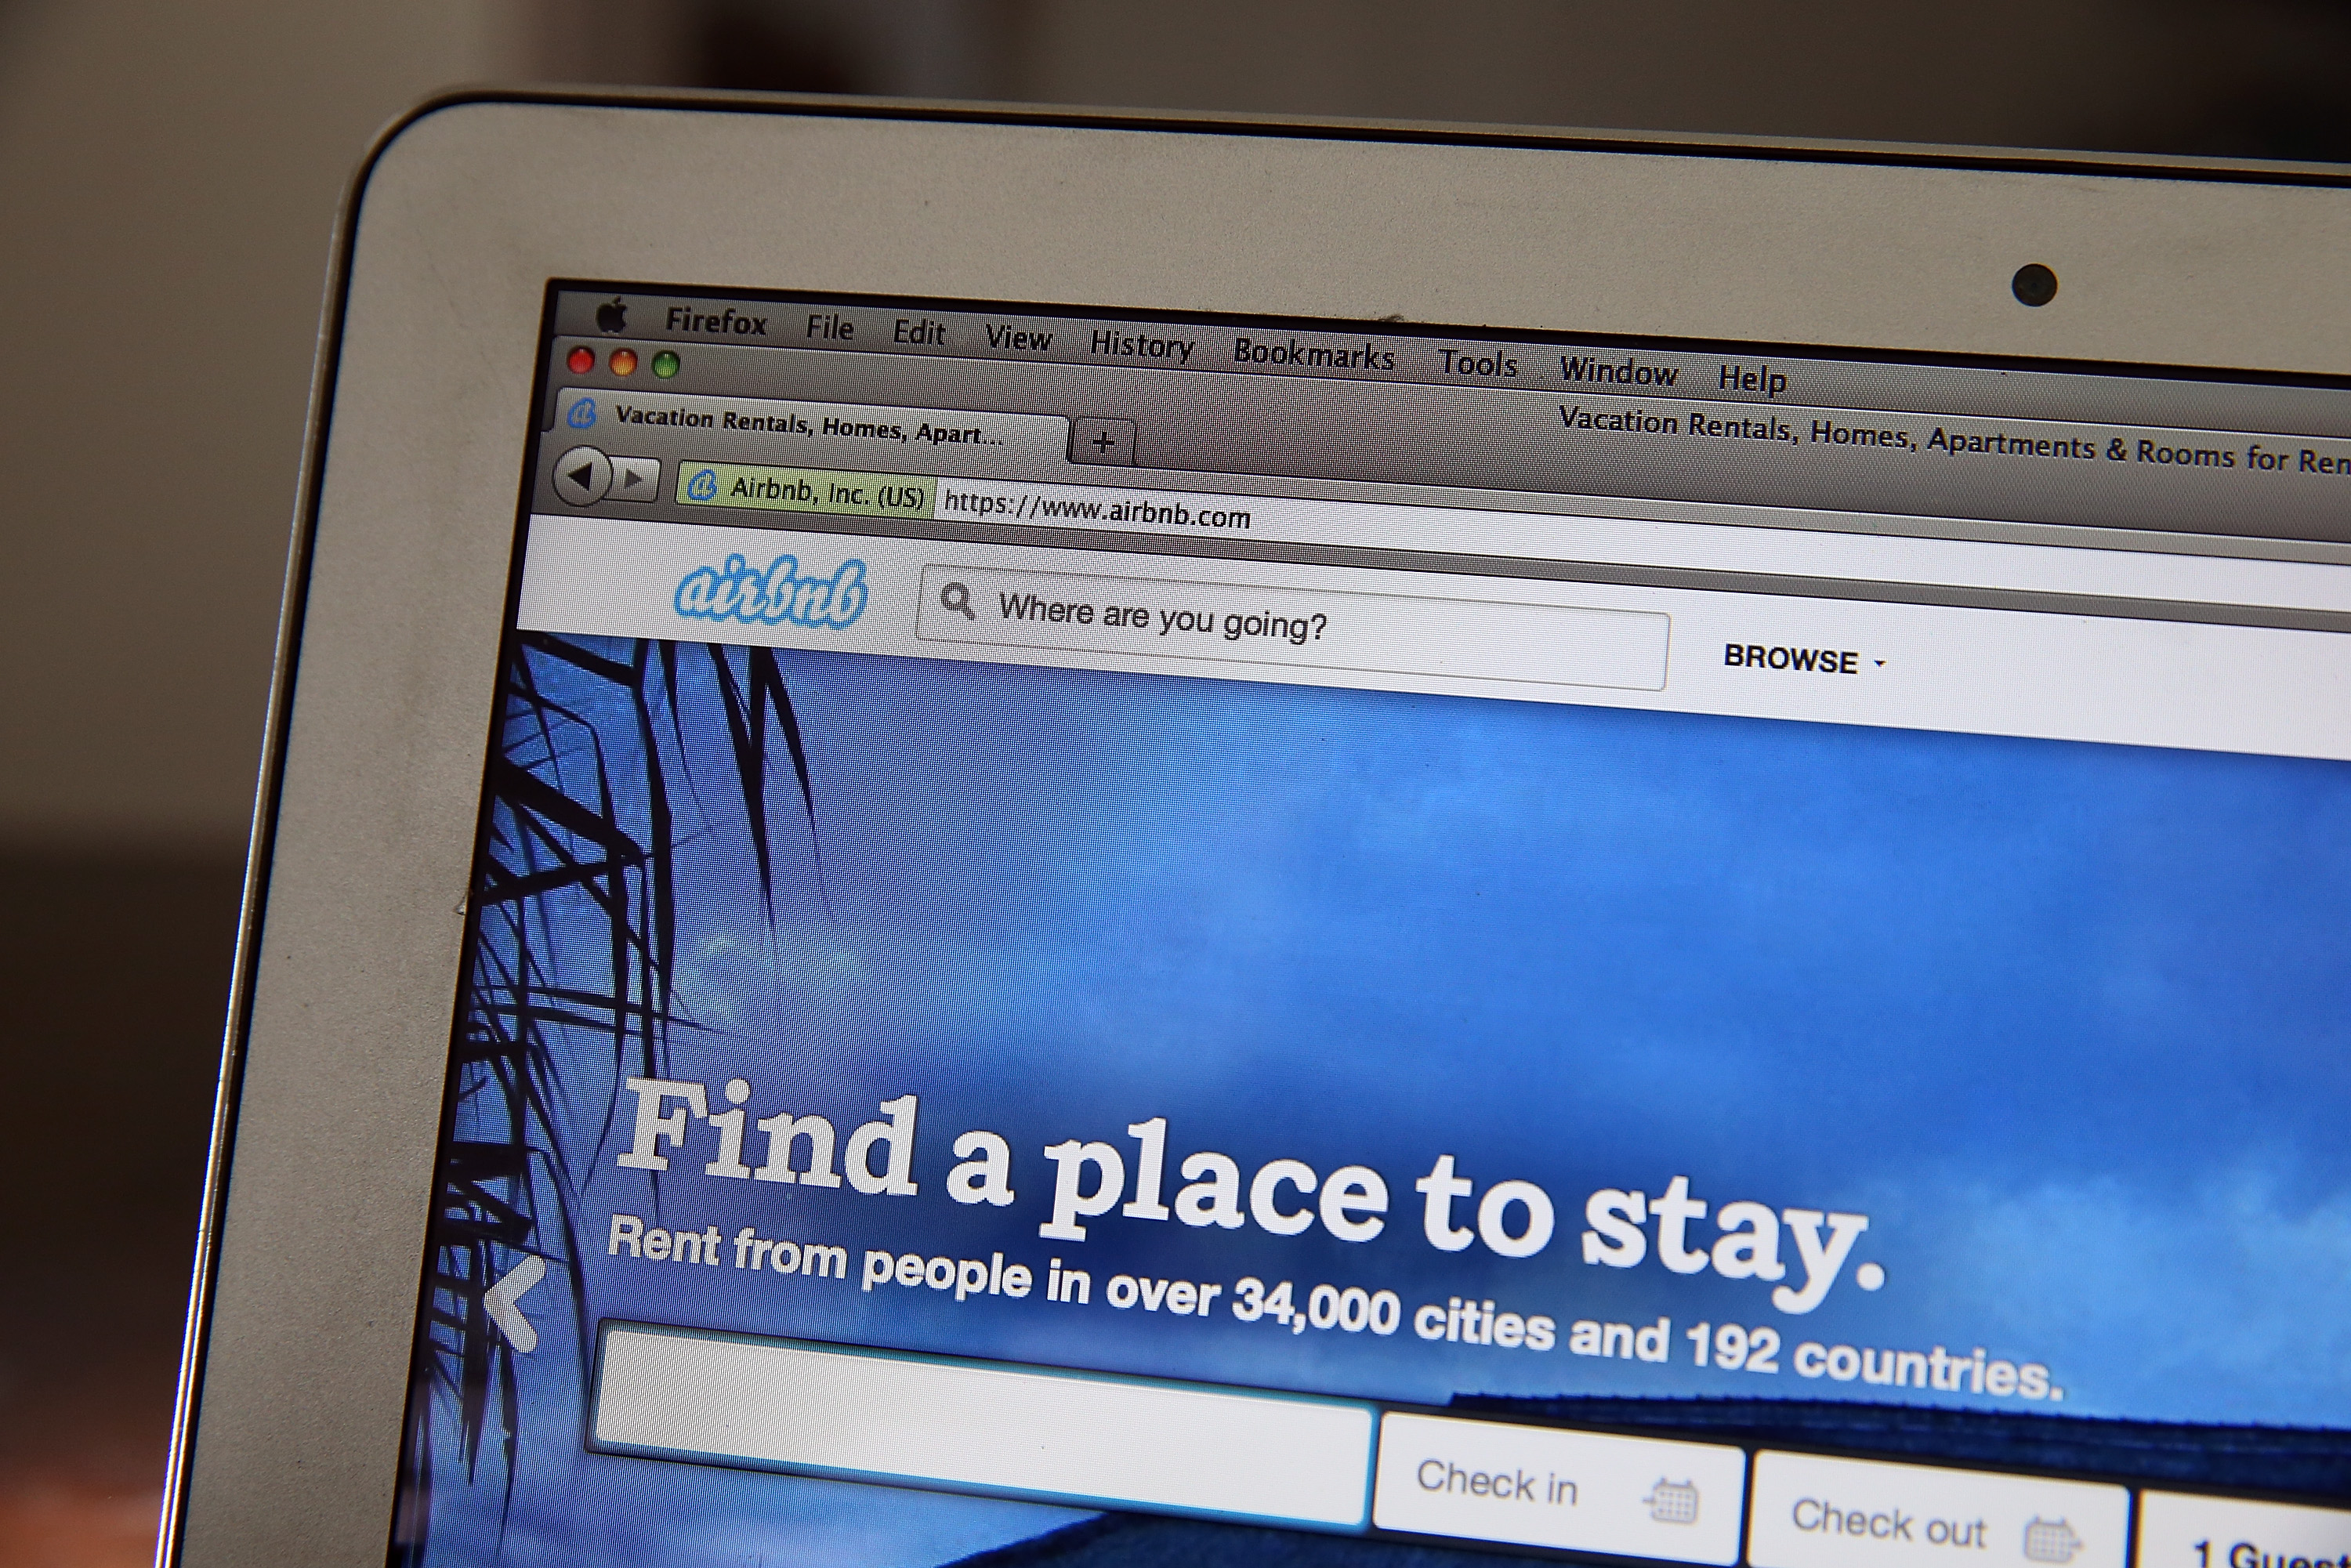 Online home-rental marketplace Airbnb Inc. is about to receive more than $450 million in investments from a group led by private-equity firm TPG. The new investments will value the startup at $10 billion, significantly higher than some publicly traded hotel chains.